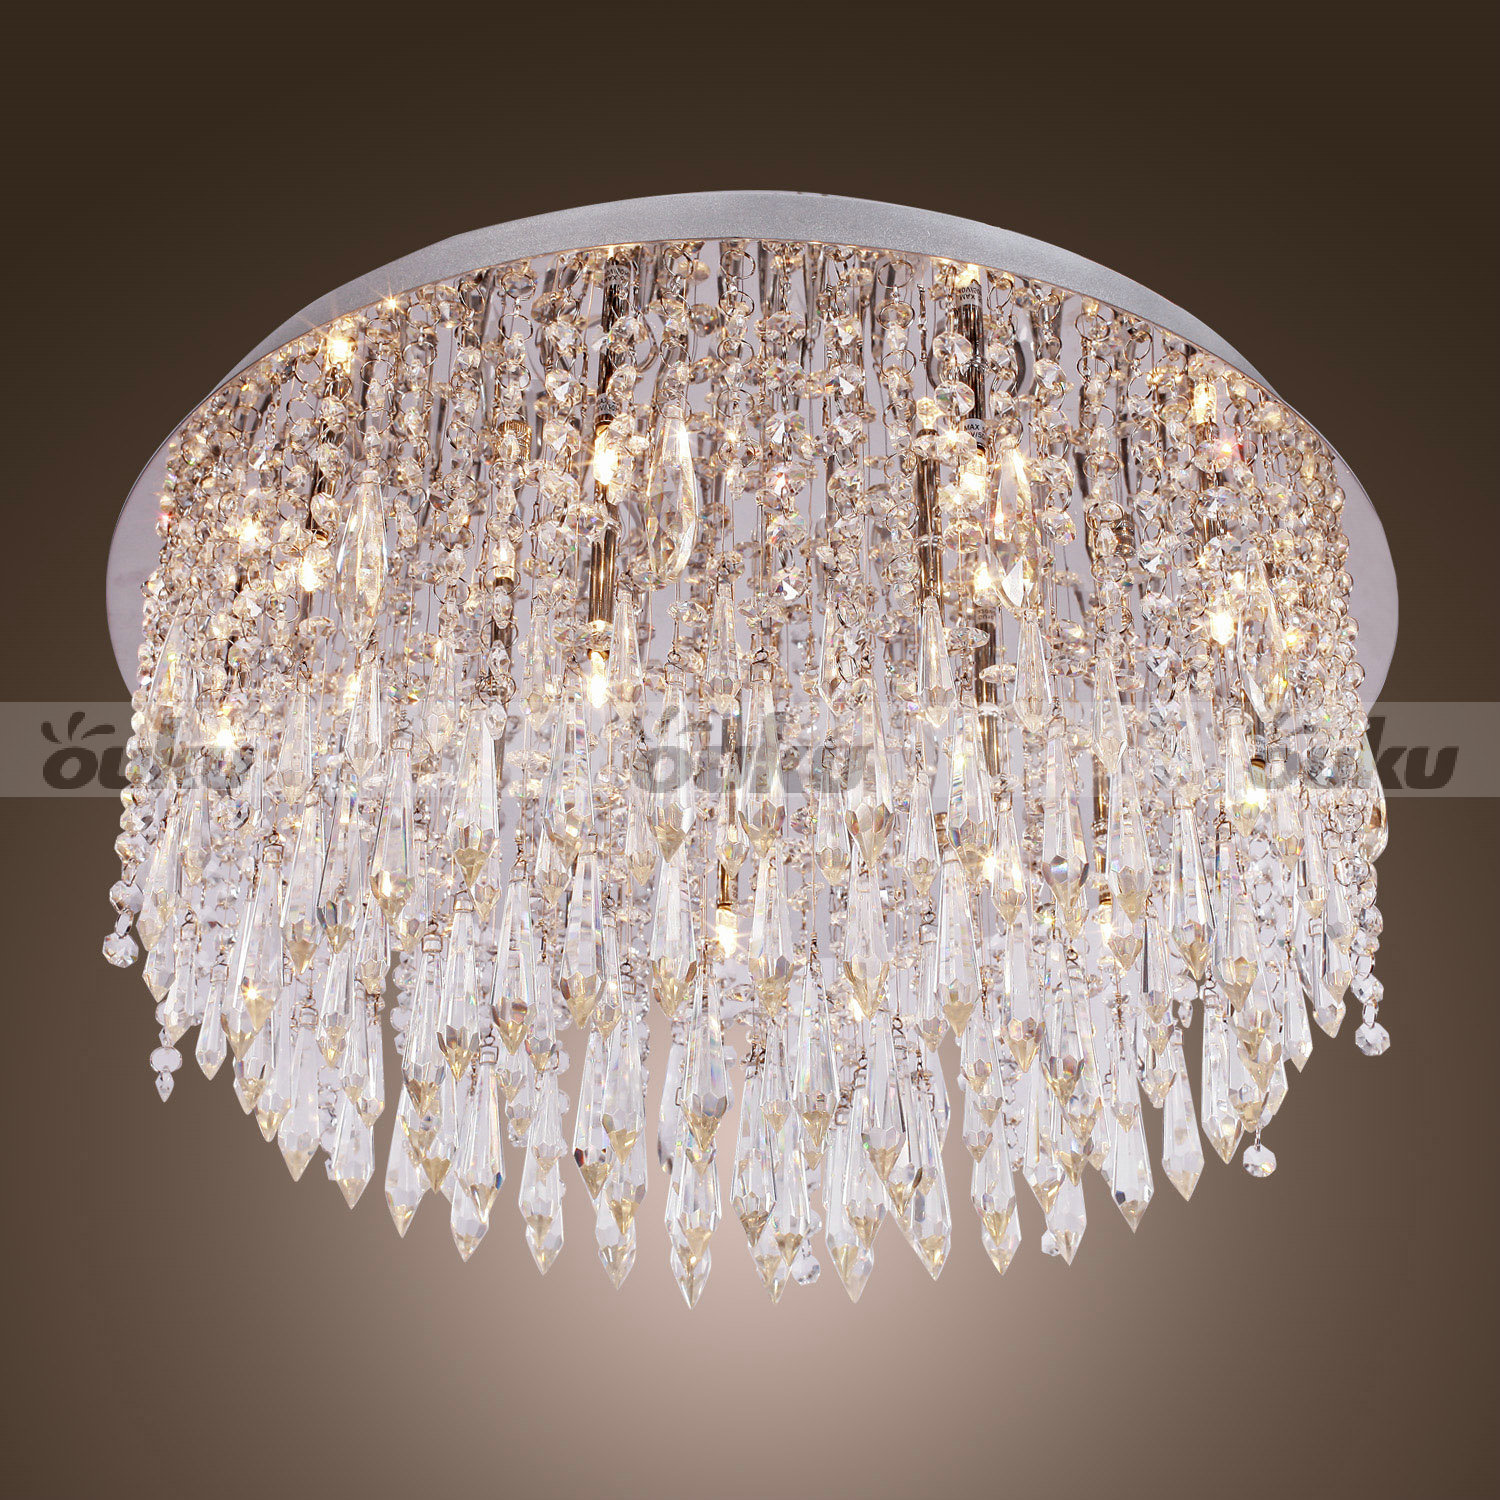 240W Crystal Flush Mount with 15 Lights in Round (G4 Bulb Base) - Modern Beaded Ceiling Chandelier Lighting Crystal Lamp Light